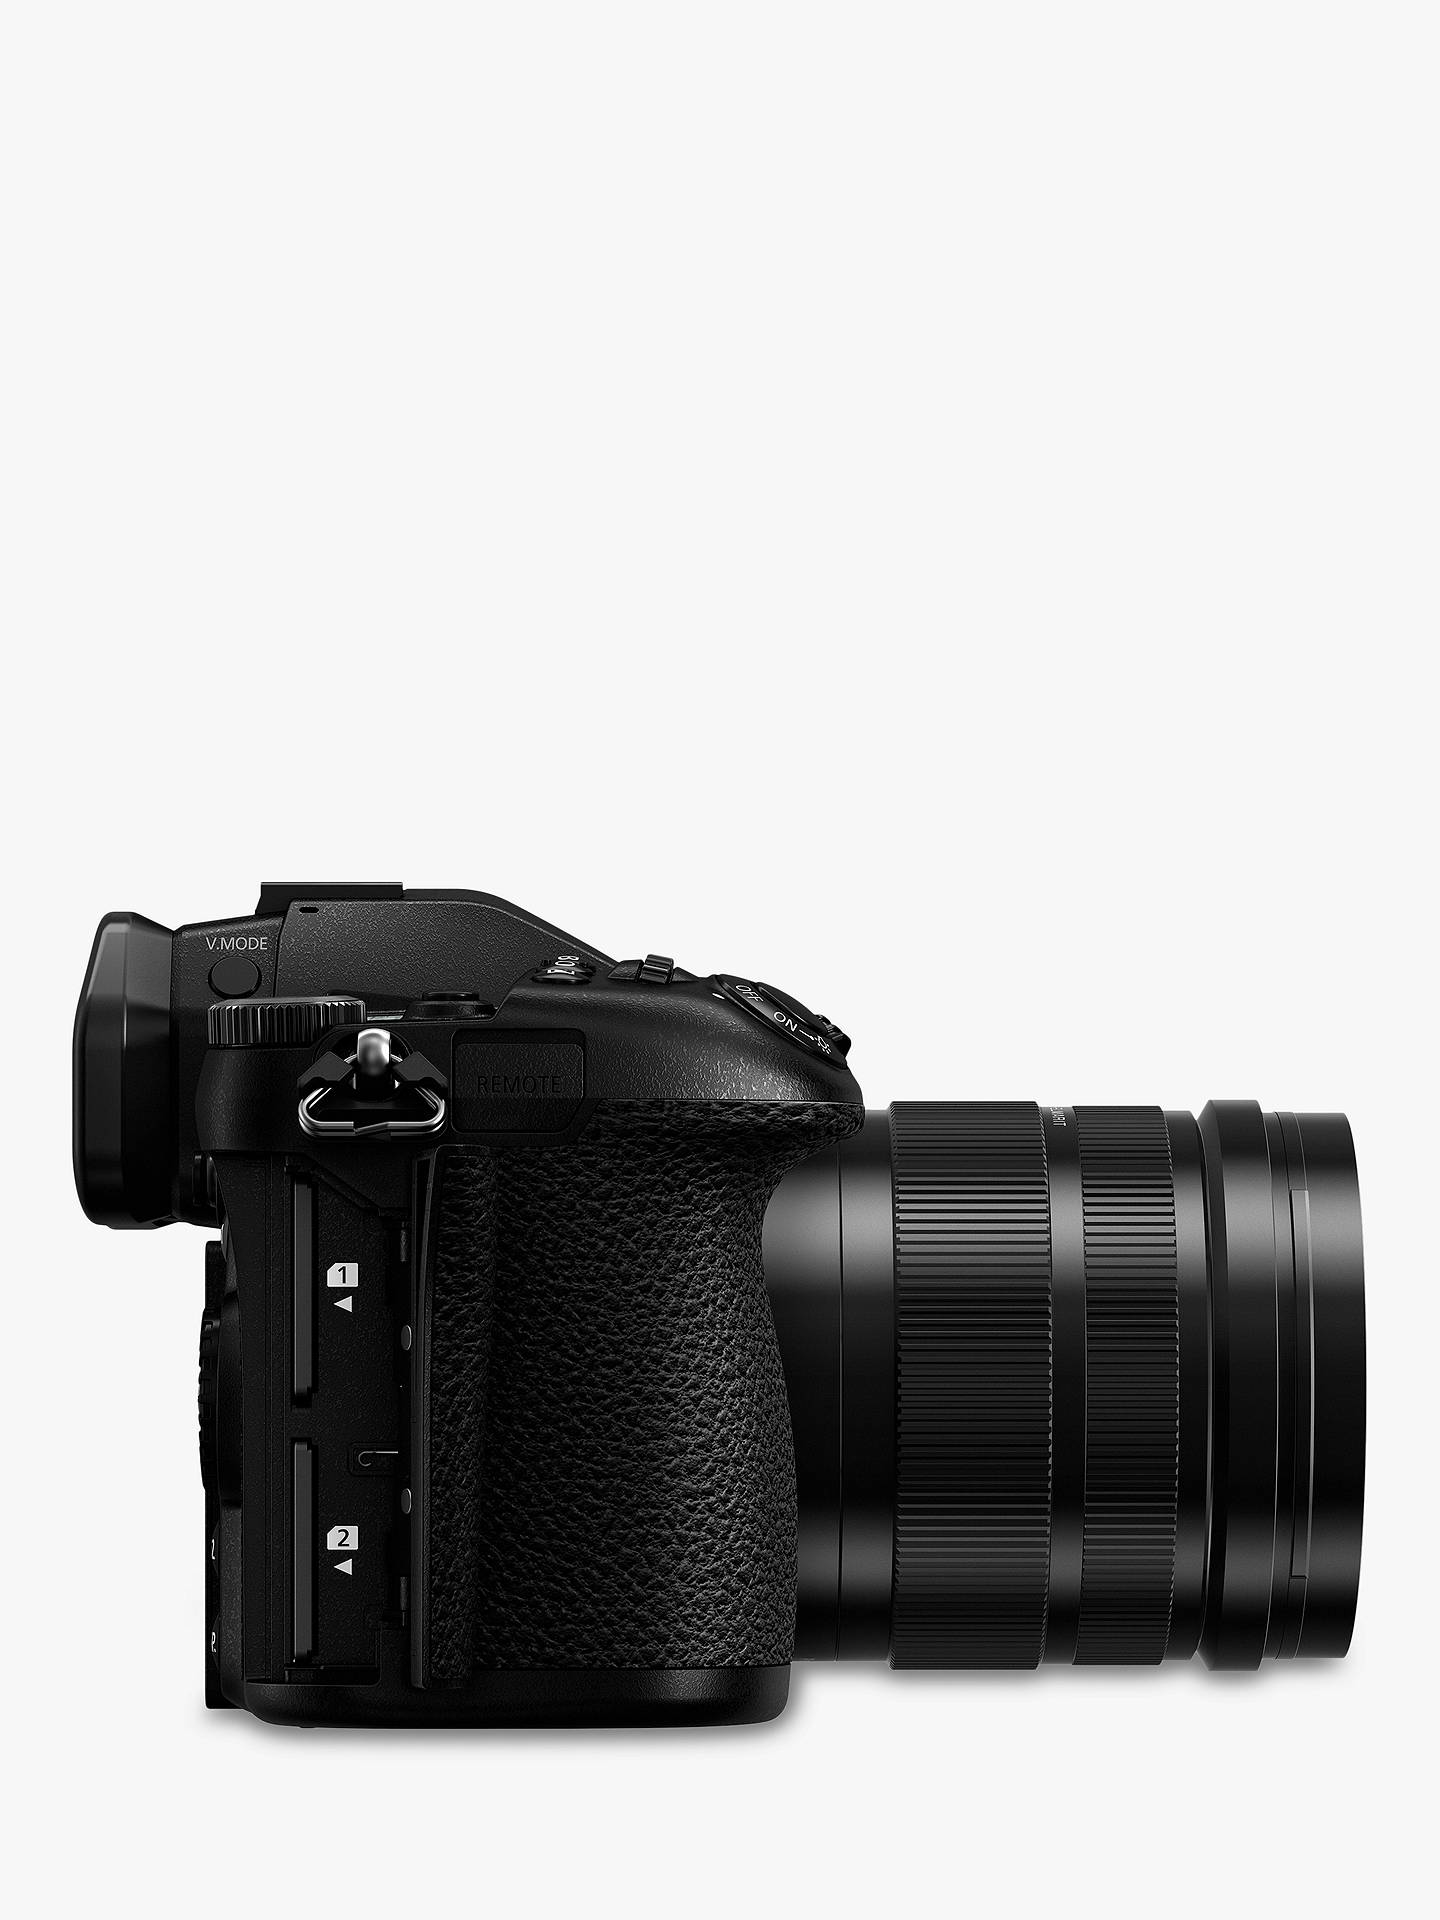 Panasonic Lumix DC-G9 Compact System Camera with Leica 12-60mm f2 8-4 0  Power O I S  Lens, 4K, 20 3MP, 4x Digital Zoom, Wi-Fi, OLED Viewfinder, 3